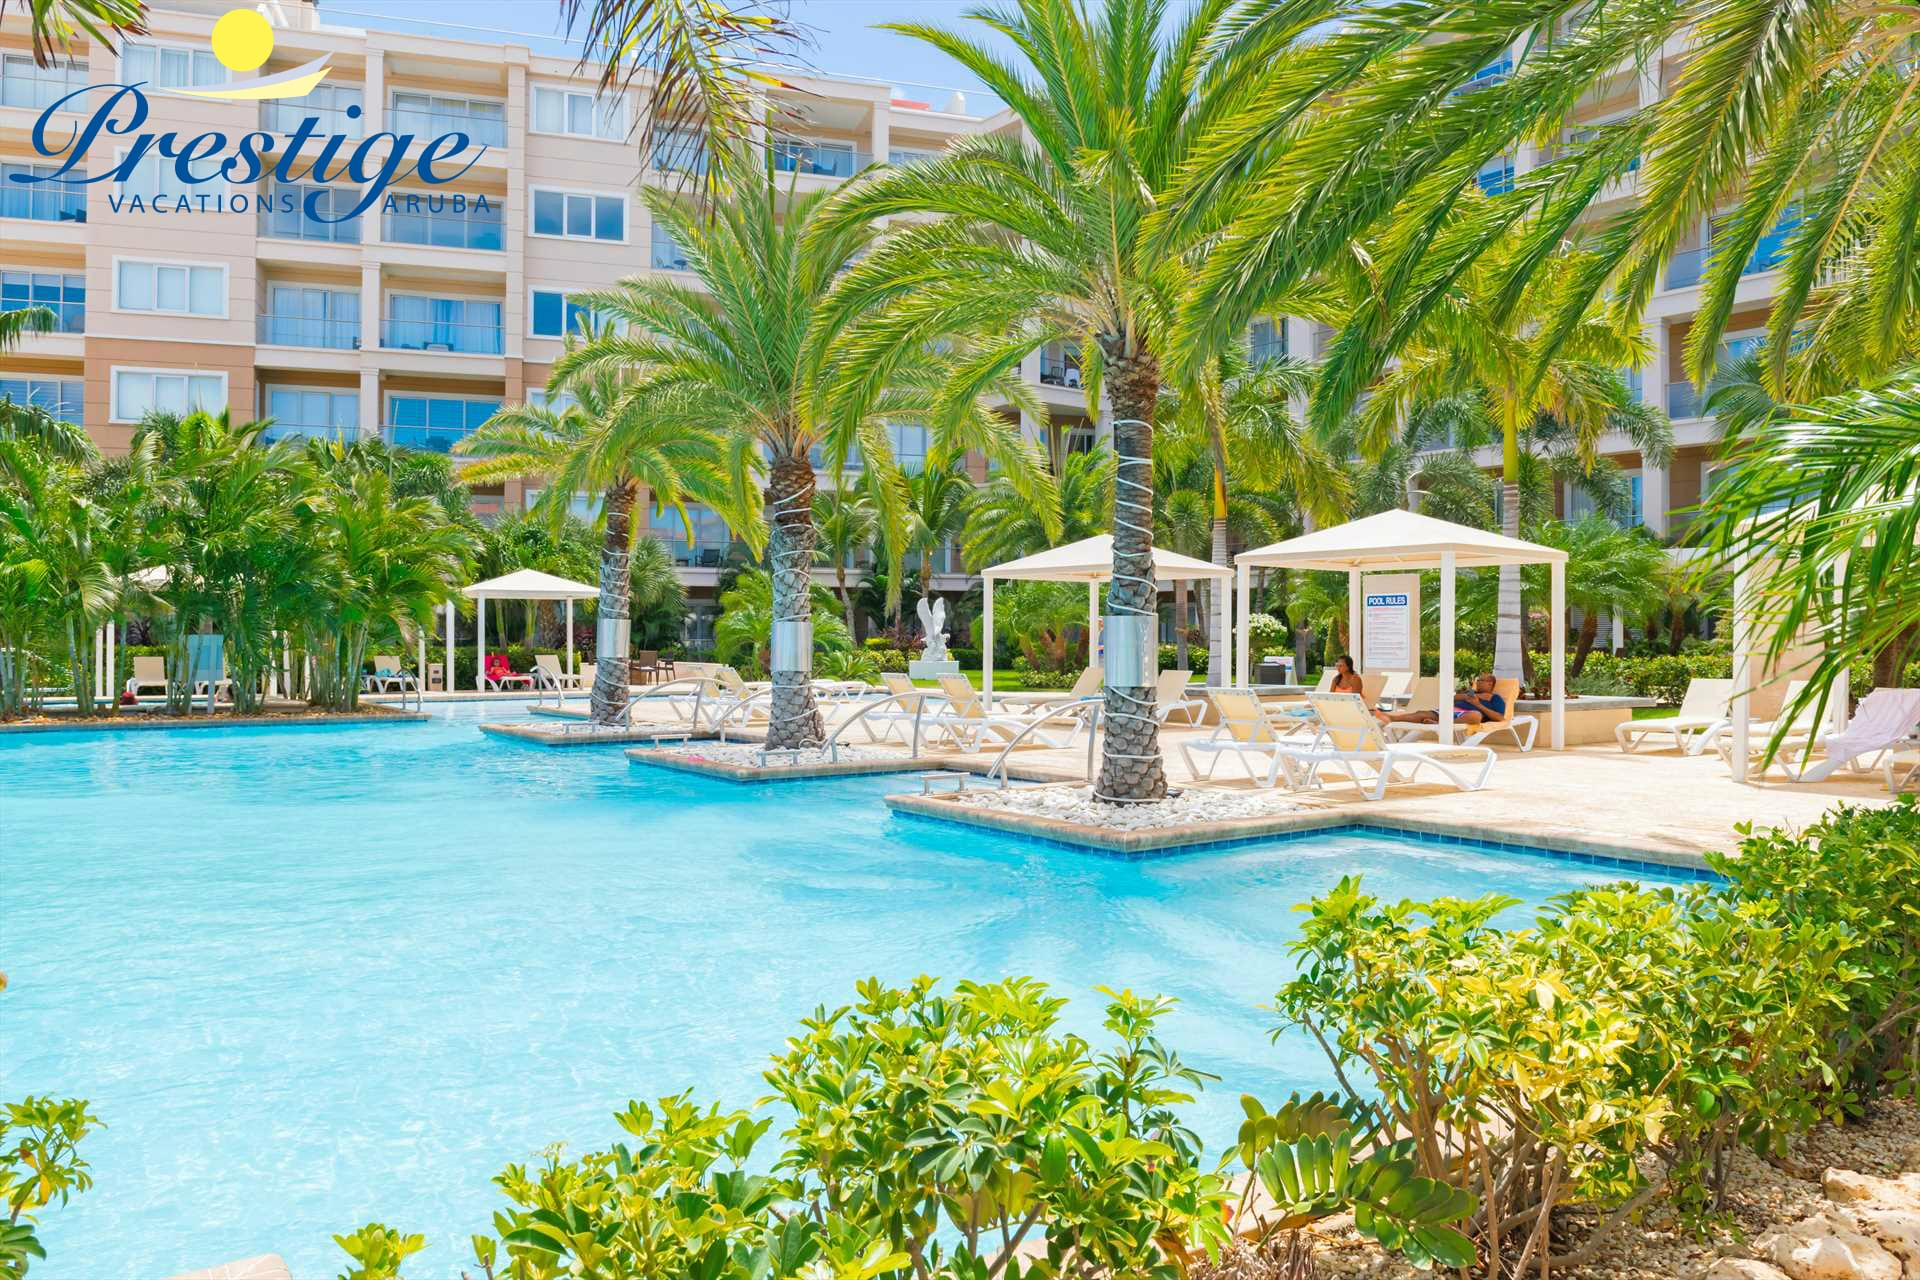 LeVent Beach Resort Aruba has luxurious vacation rentals located at Eagle Beach!